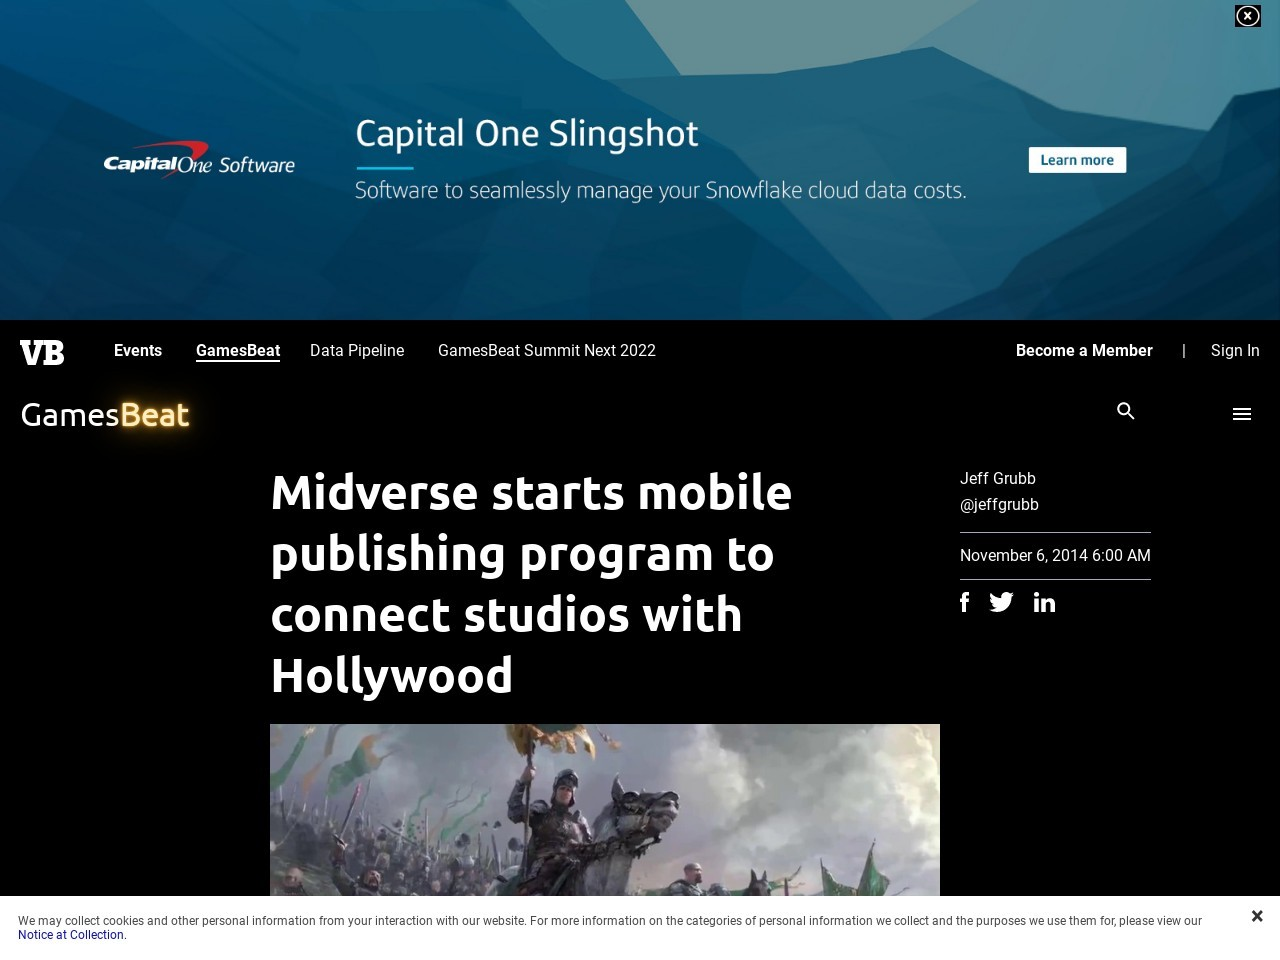 Midverse starts publishing program to connect mobile studios with Hollywood